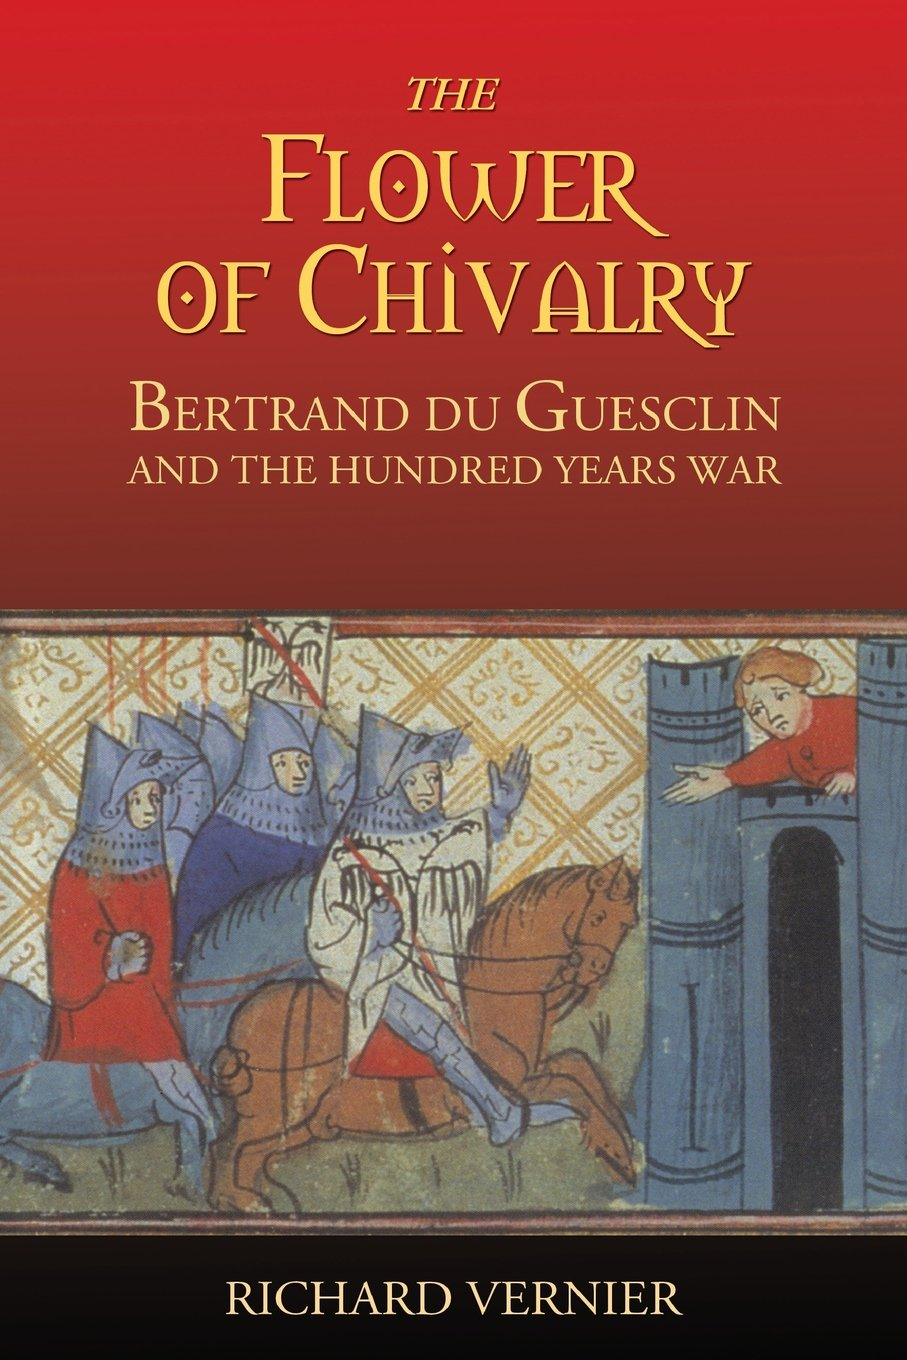 Download The Flower of Chivalry: Bertrand du Guesclin and the Hundred Years War pdf epub